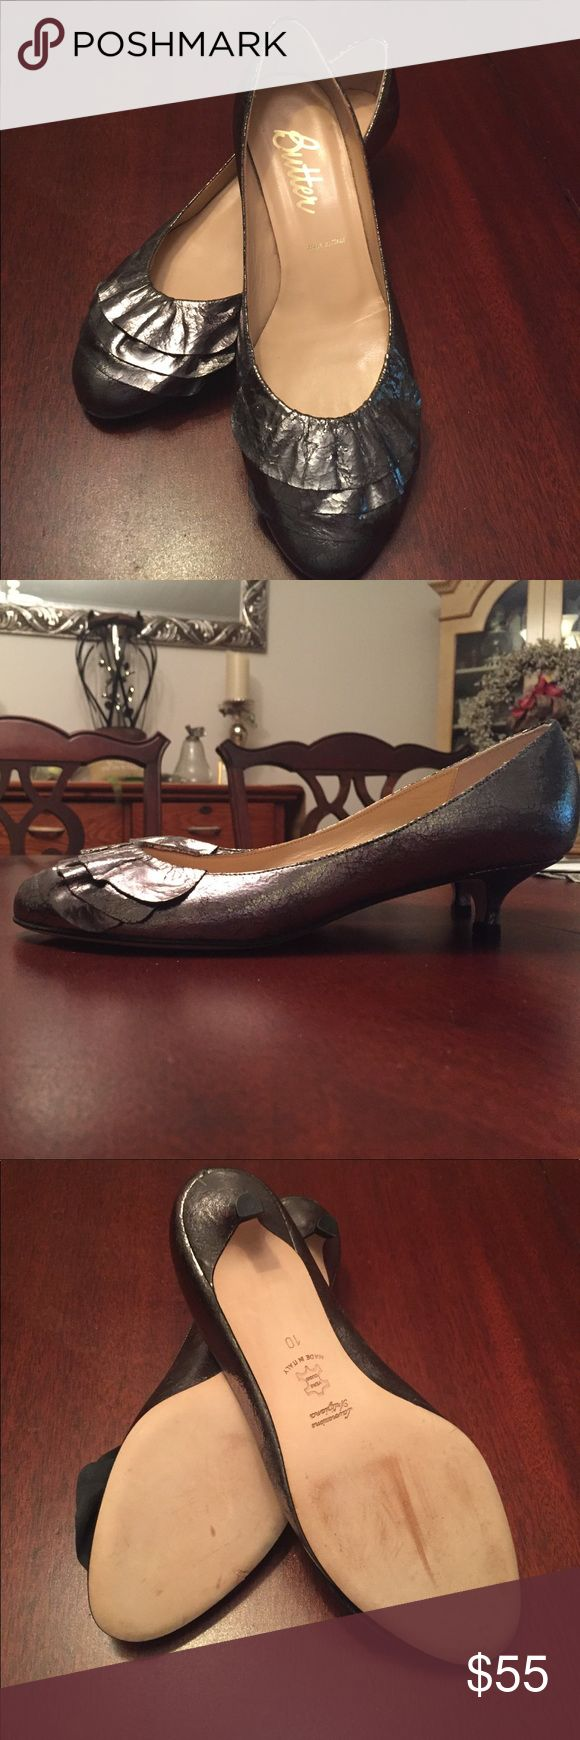 Butter distressed metallic heel. Never worn! Beautiful metallic heel by Butter! Never worn! Marks on sole are strictly from being moved around the closet! Heel is 1/2 inch Butter Shoes Shoes Heels